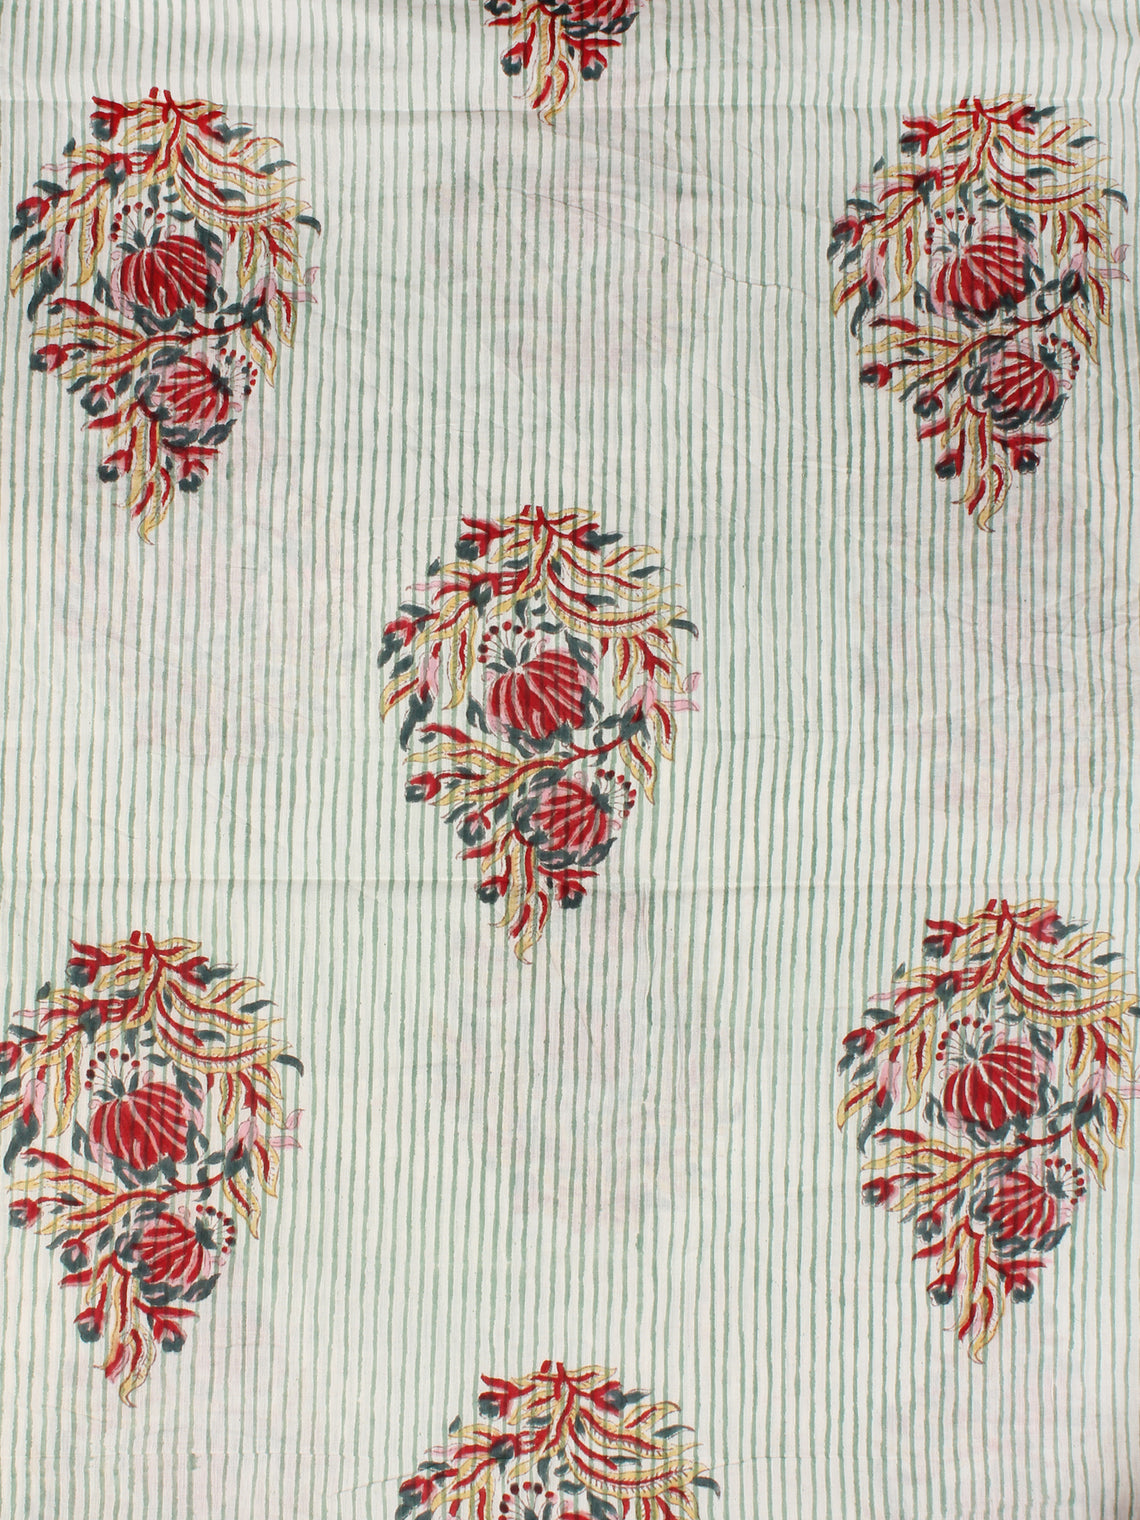 Off White Green Red Hand Block Printed Cotton Fabric Per Meter - F001F2359